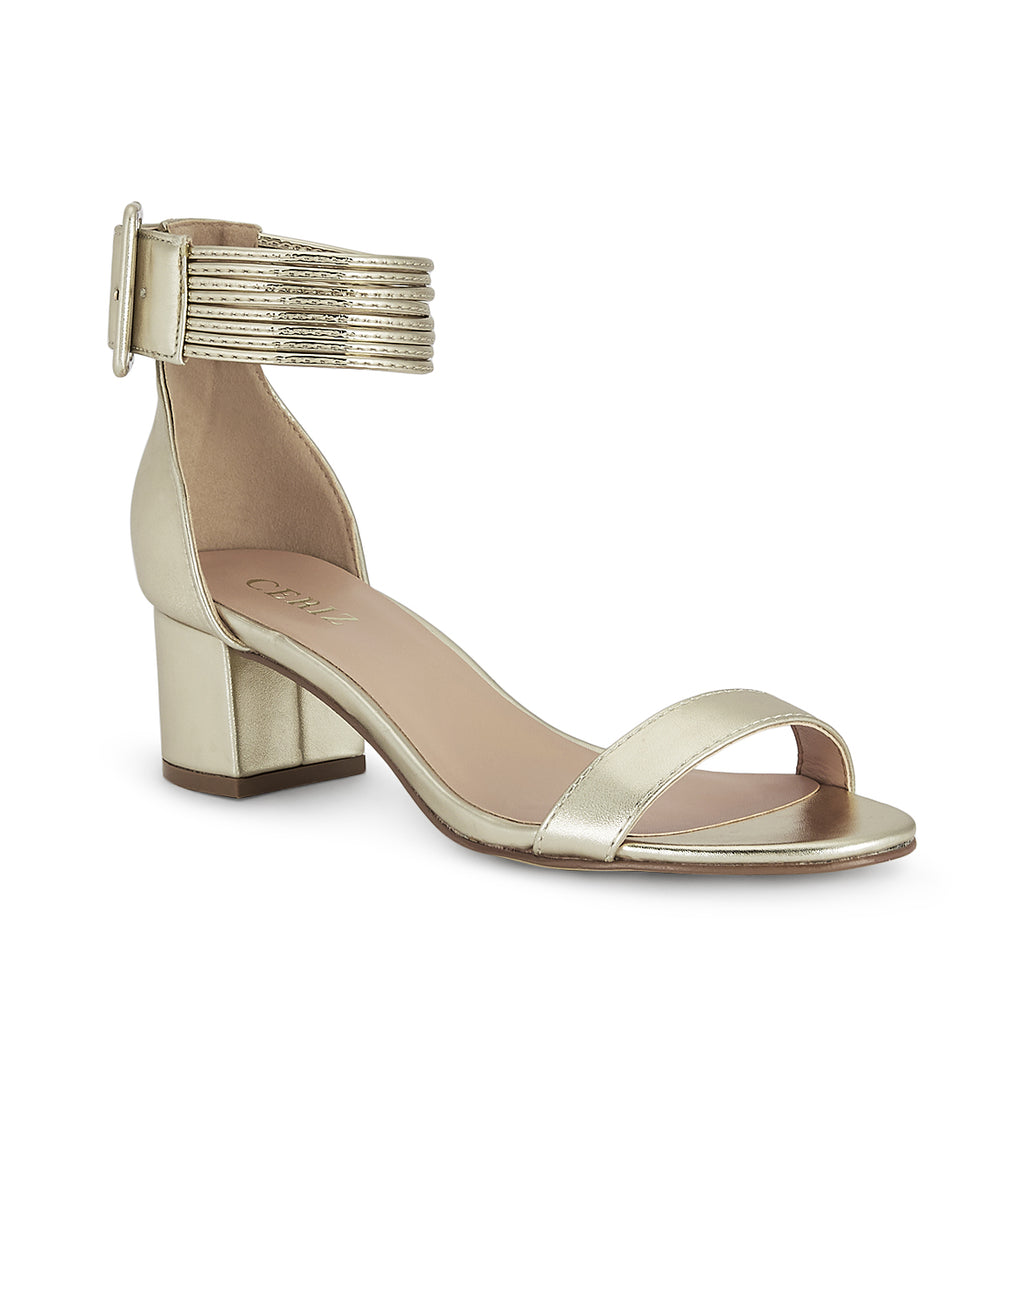 Noelle Block Heel Gold Sandals